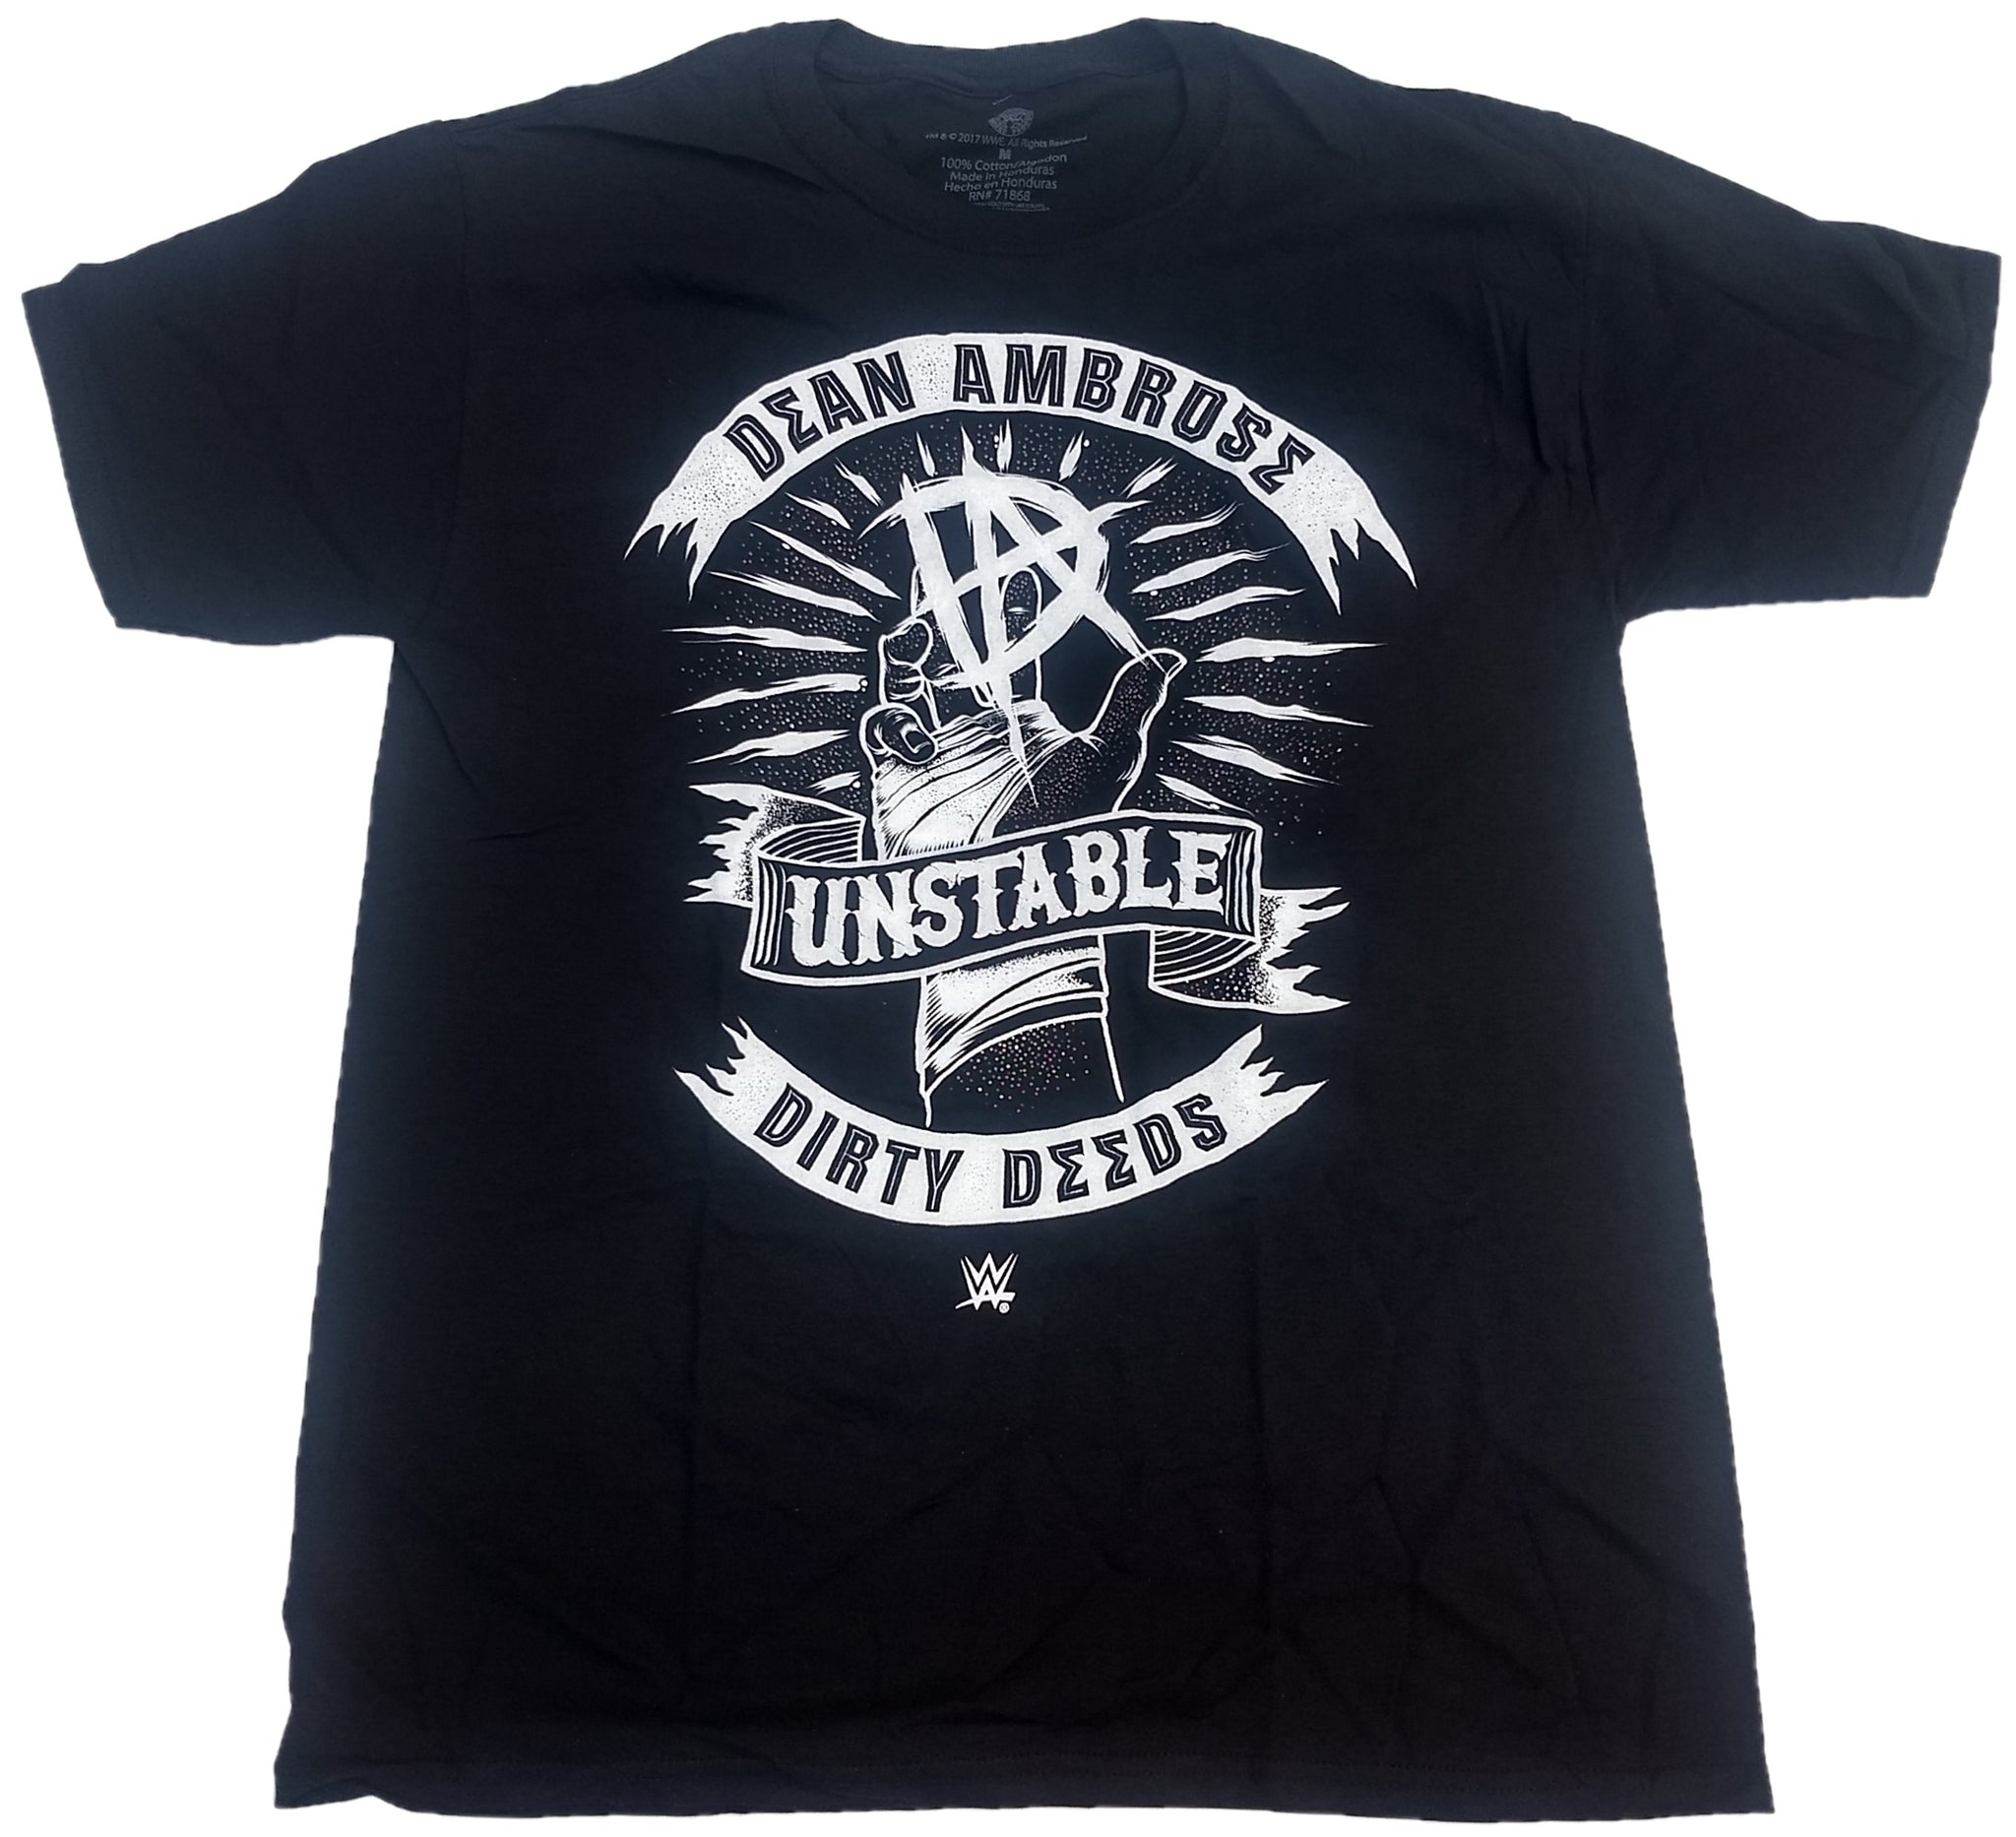 Dean Ambrose Unstable Dirty Deeds WWE Wrestling Mens T-Shirt (Black)